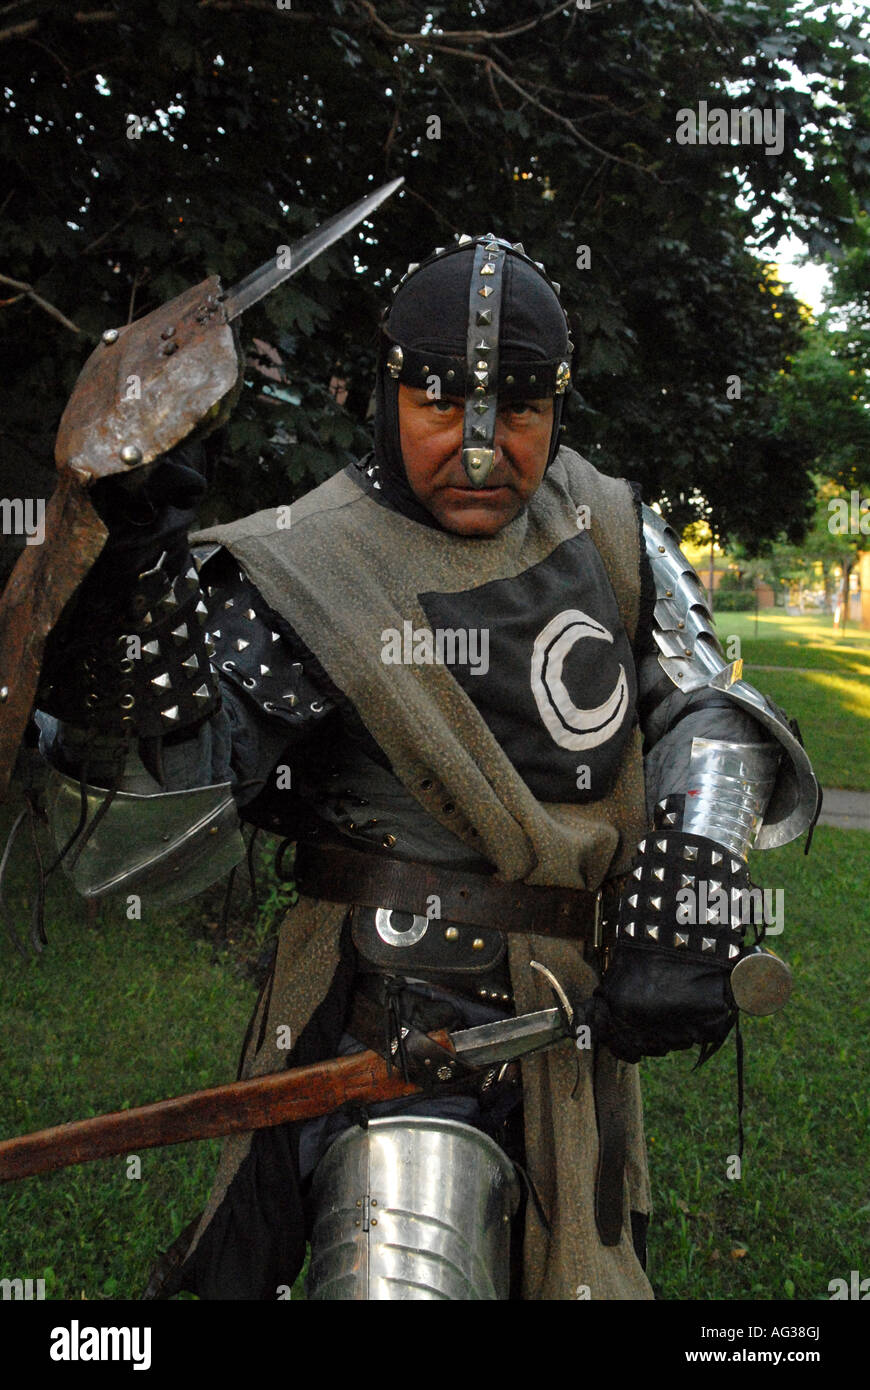 Knight in Medieval costume - Stock Image